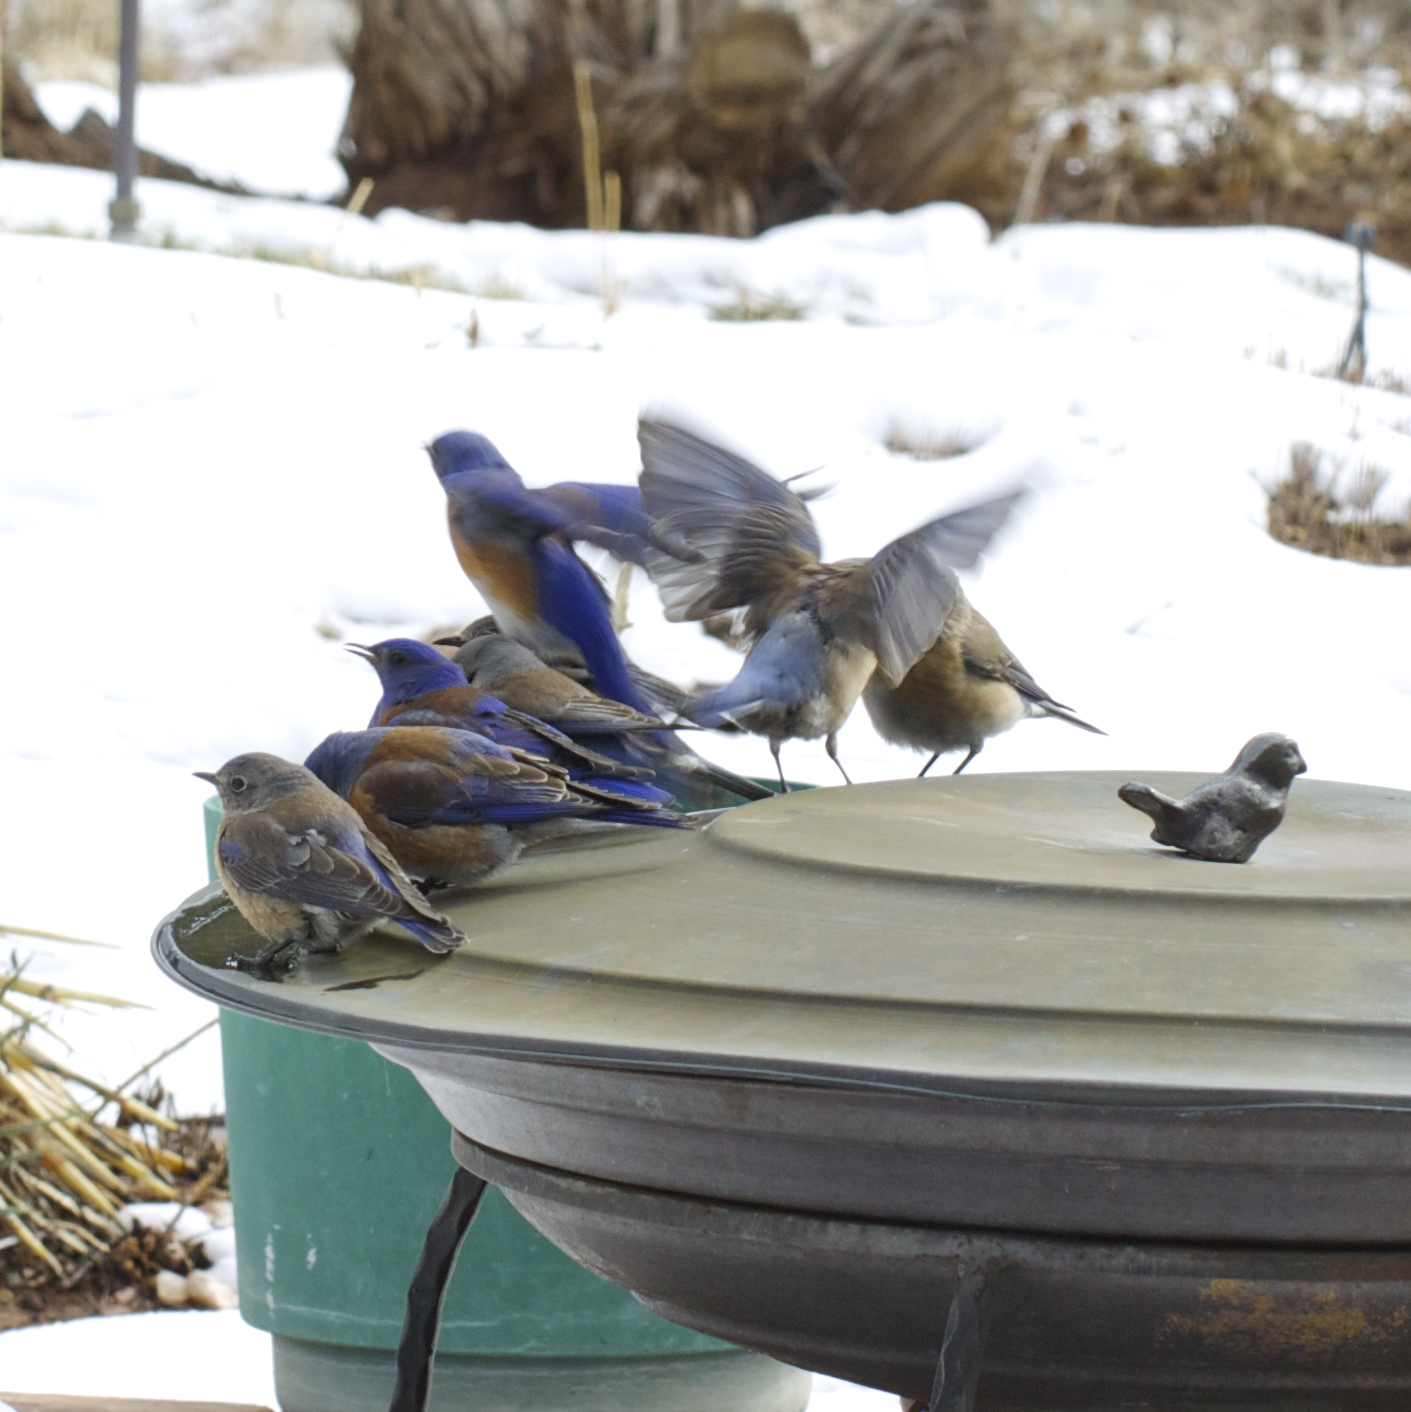 ... than a flock of western bluebirds descended.